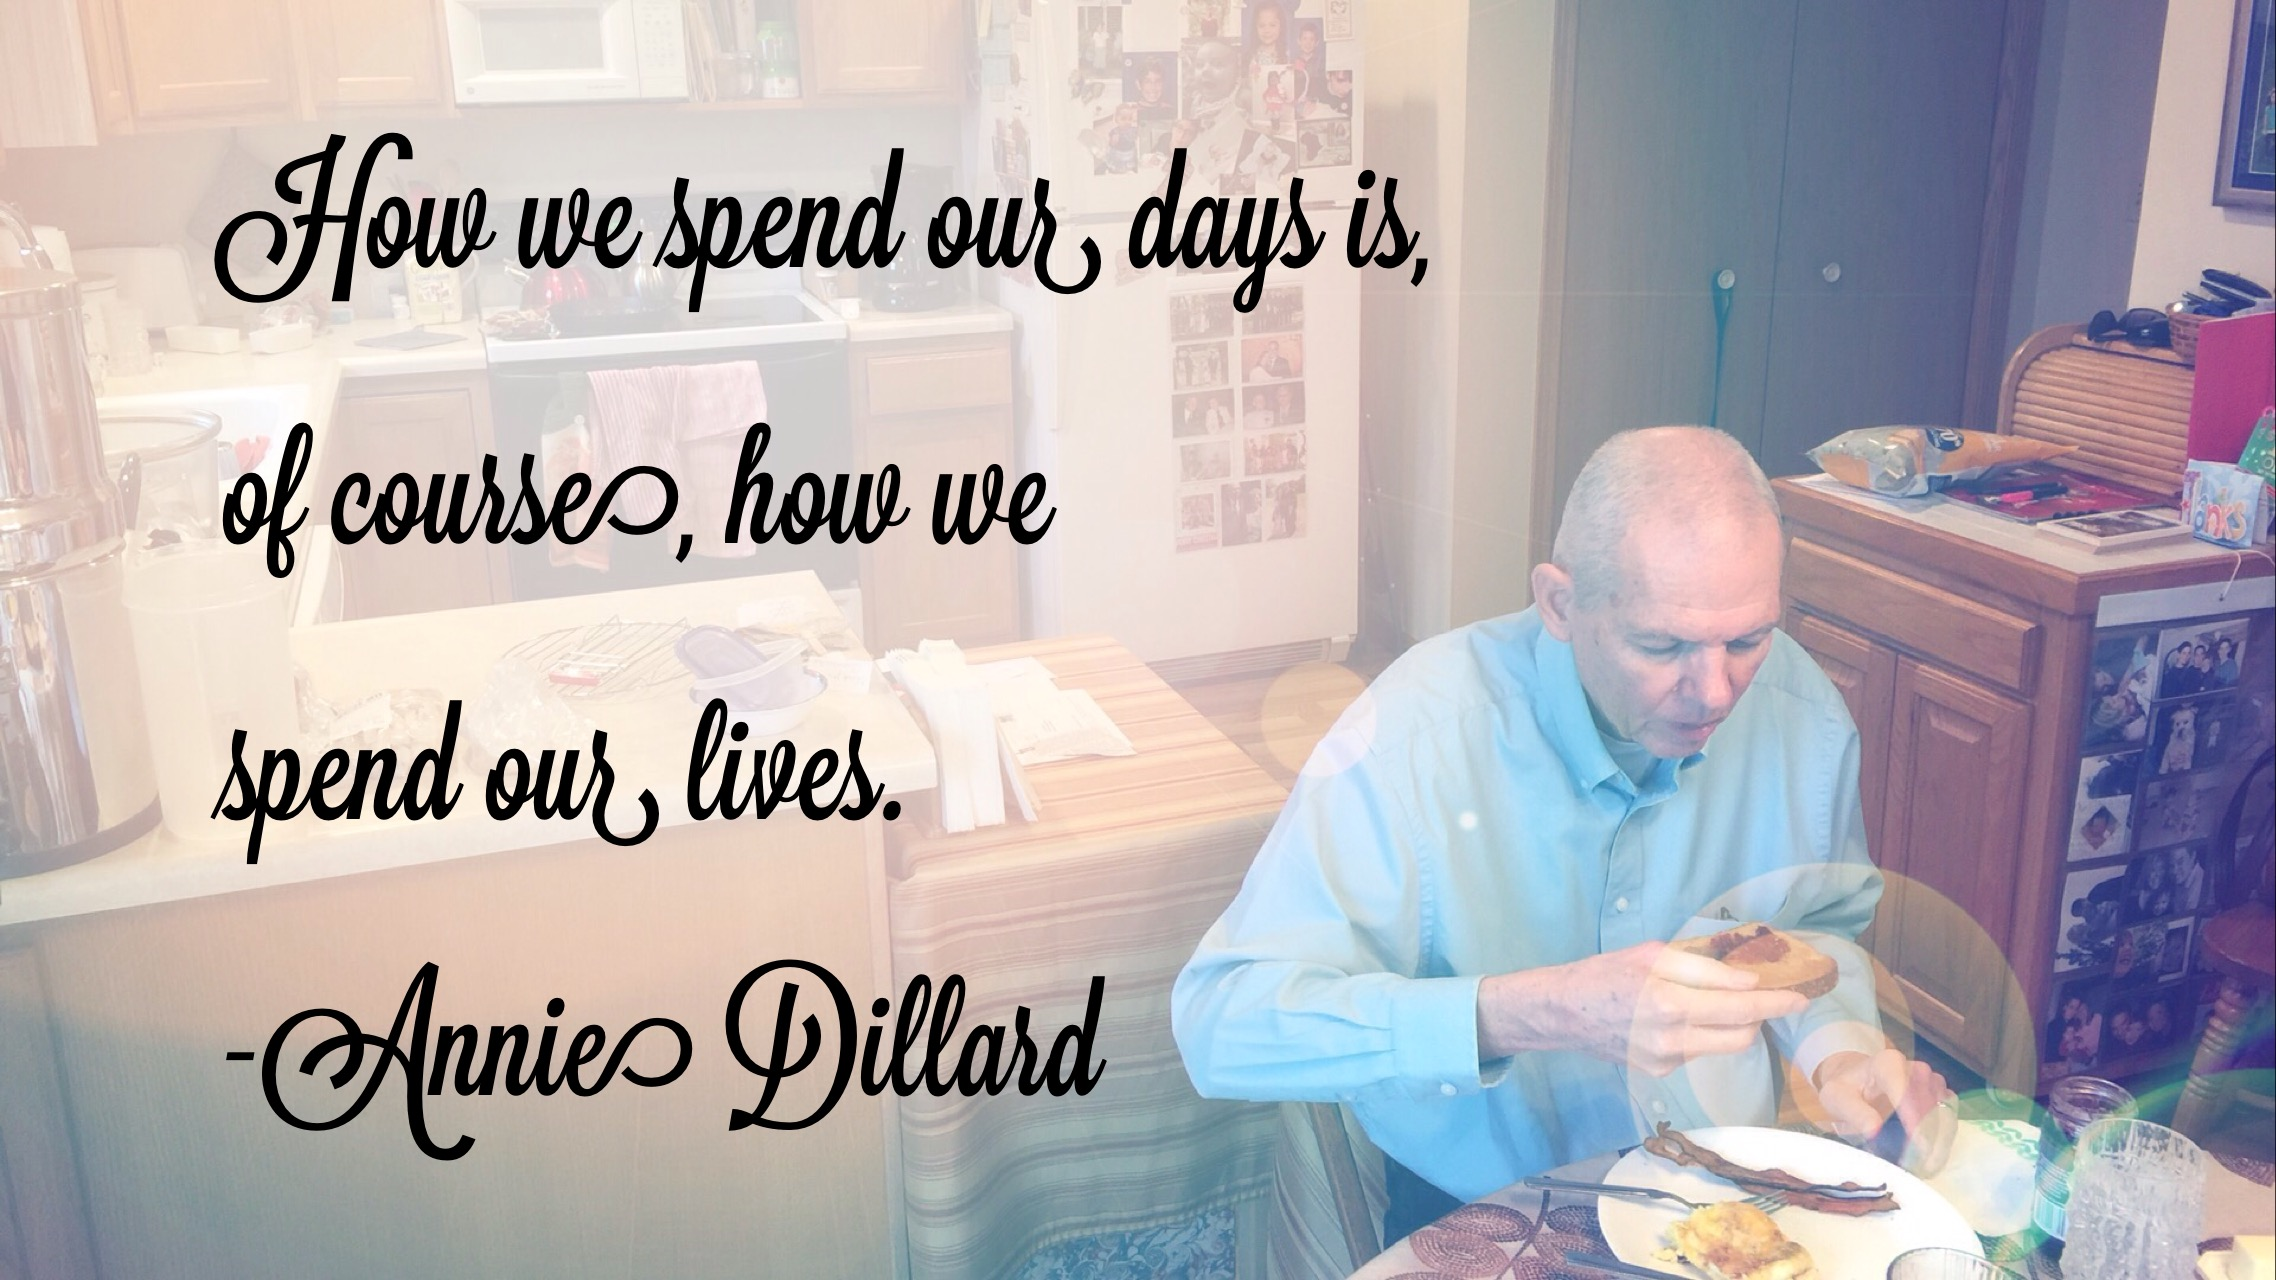 How we spend out days is, of courses, how we spend out lives. -Annie Dillard